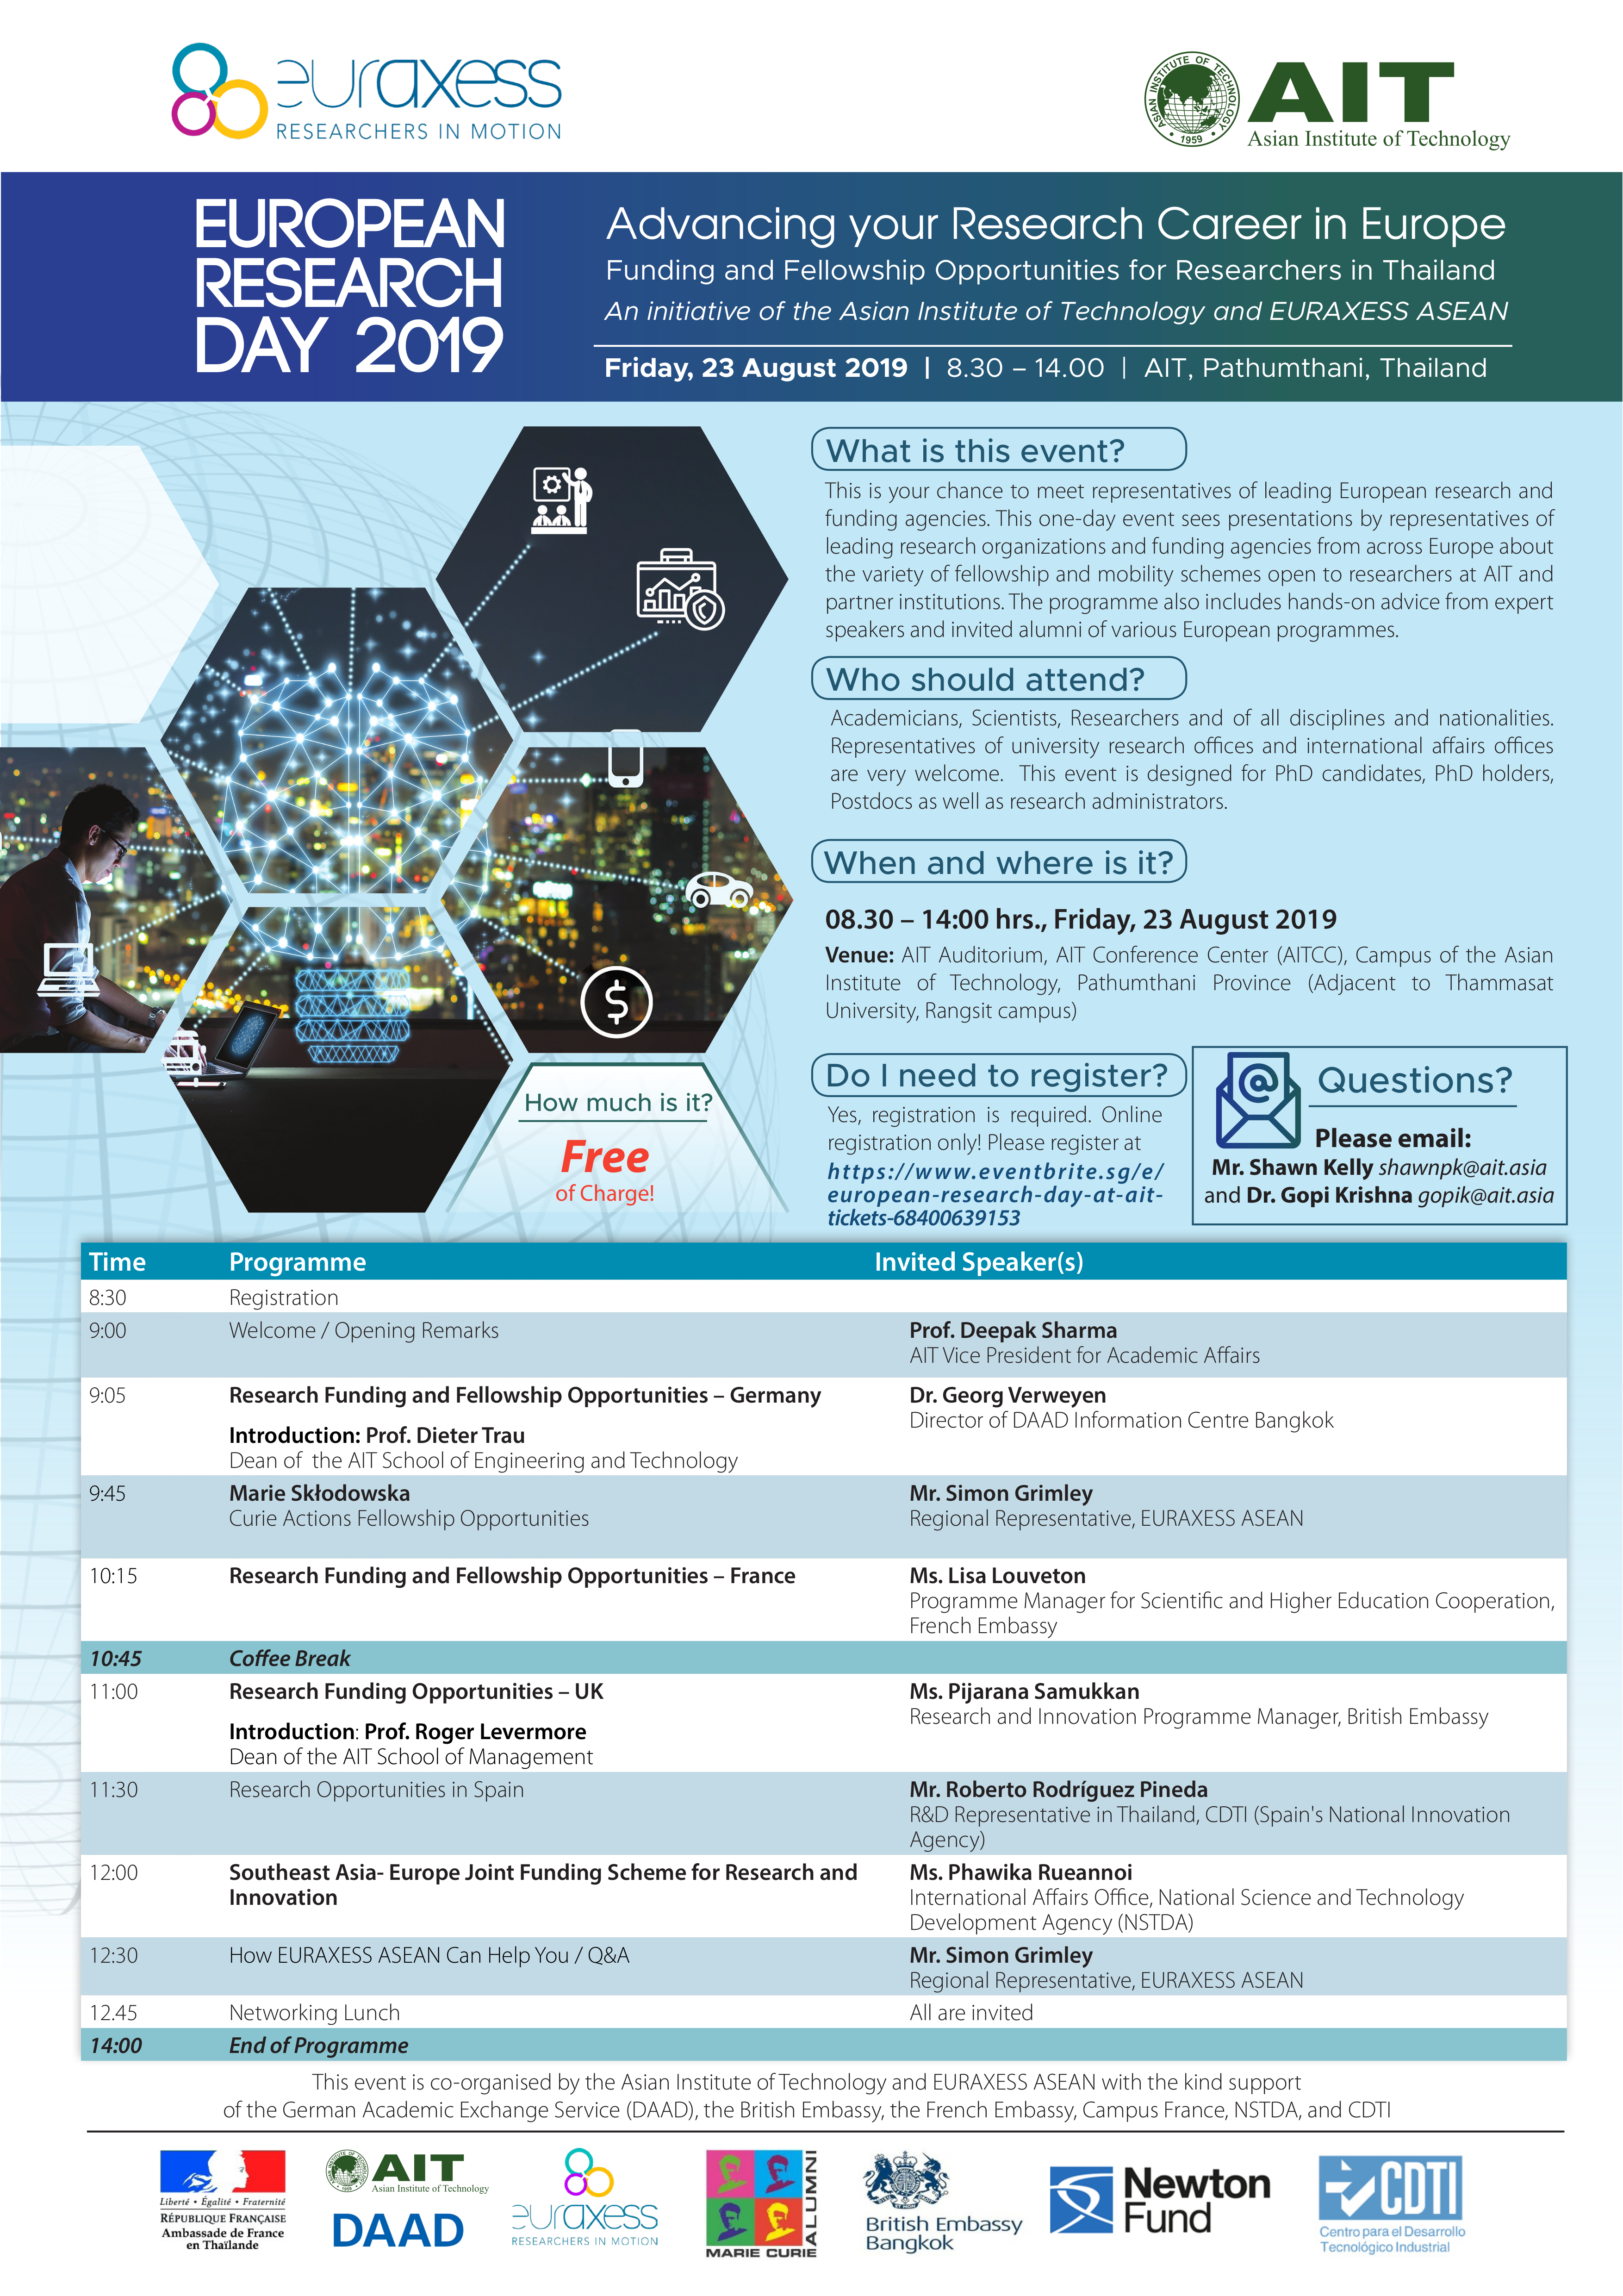 European Research Day 2019 - Asian Institute of Technology